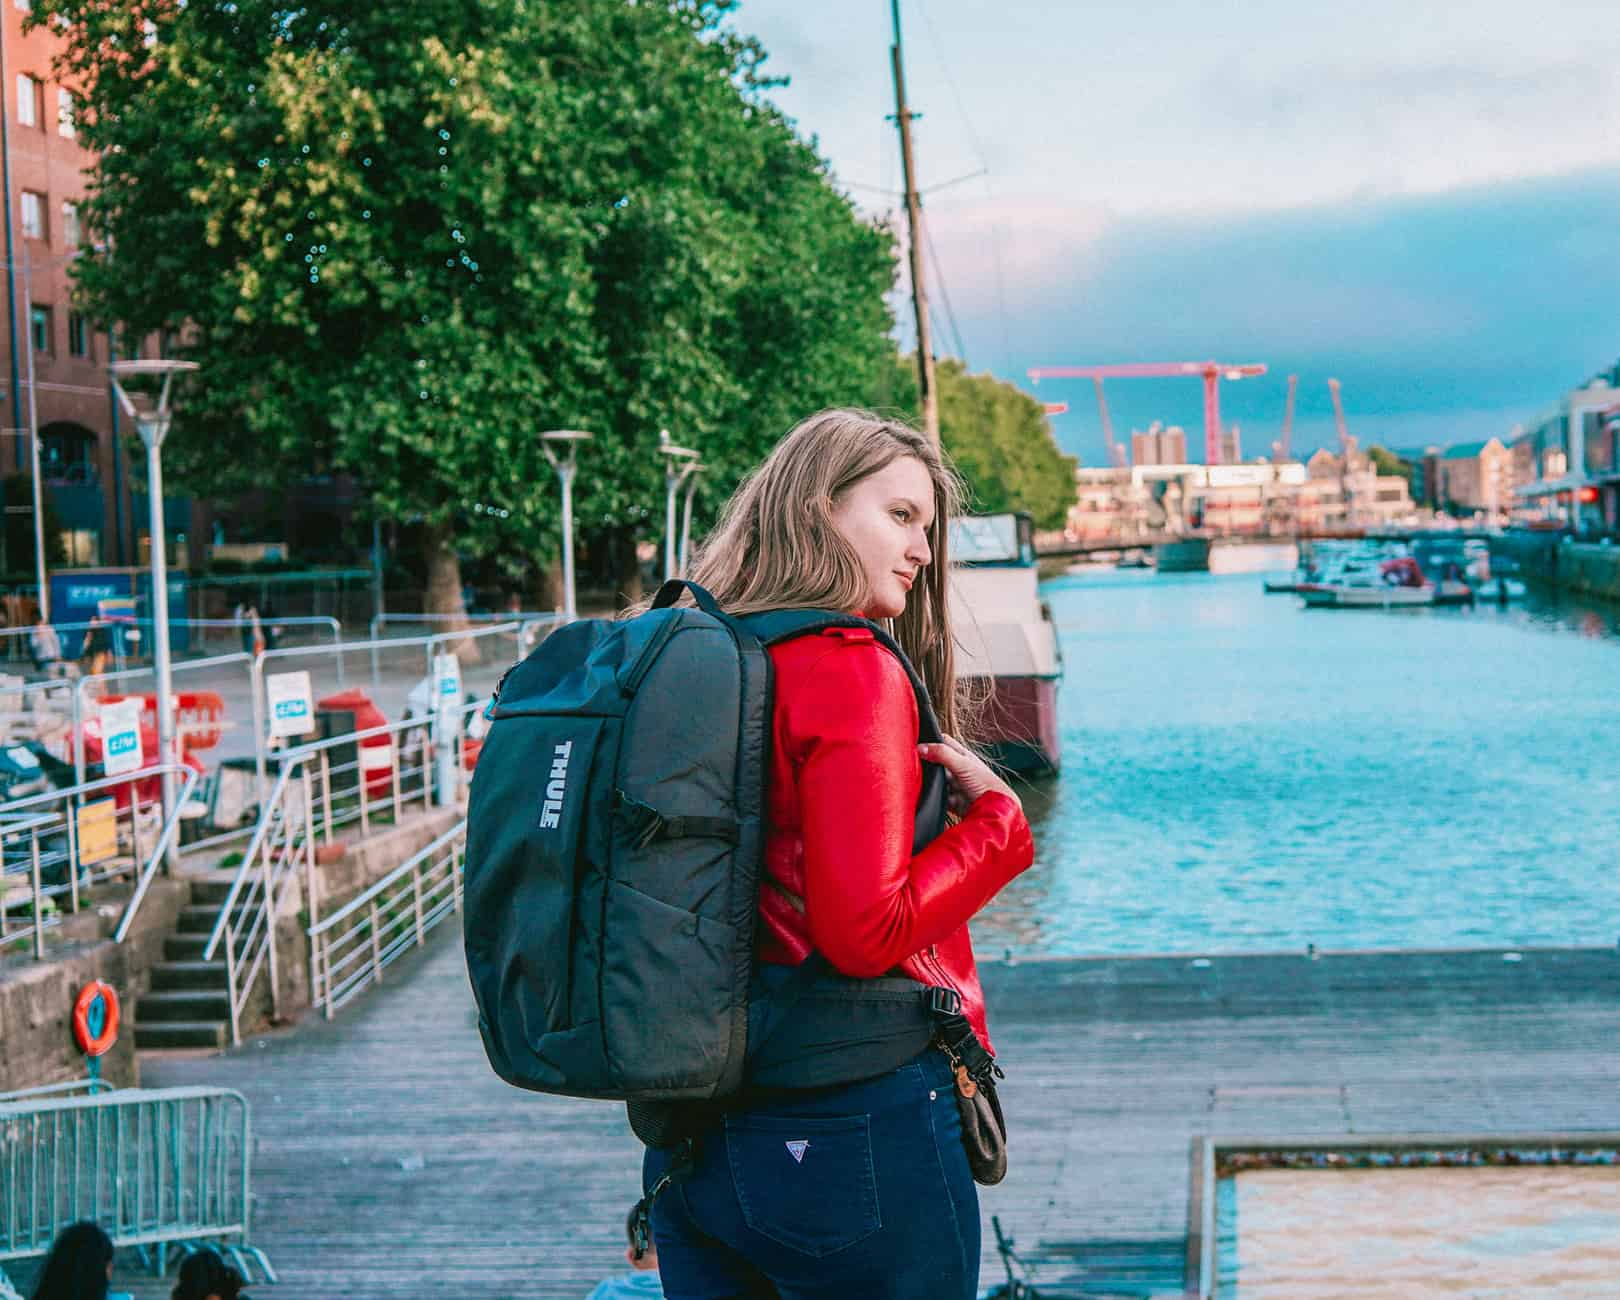 Free things to do in Bristol [+ London to Bristol bus promo code]